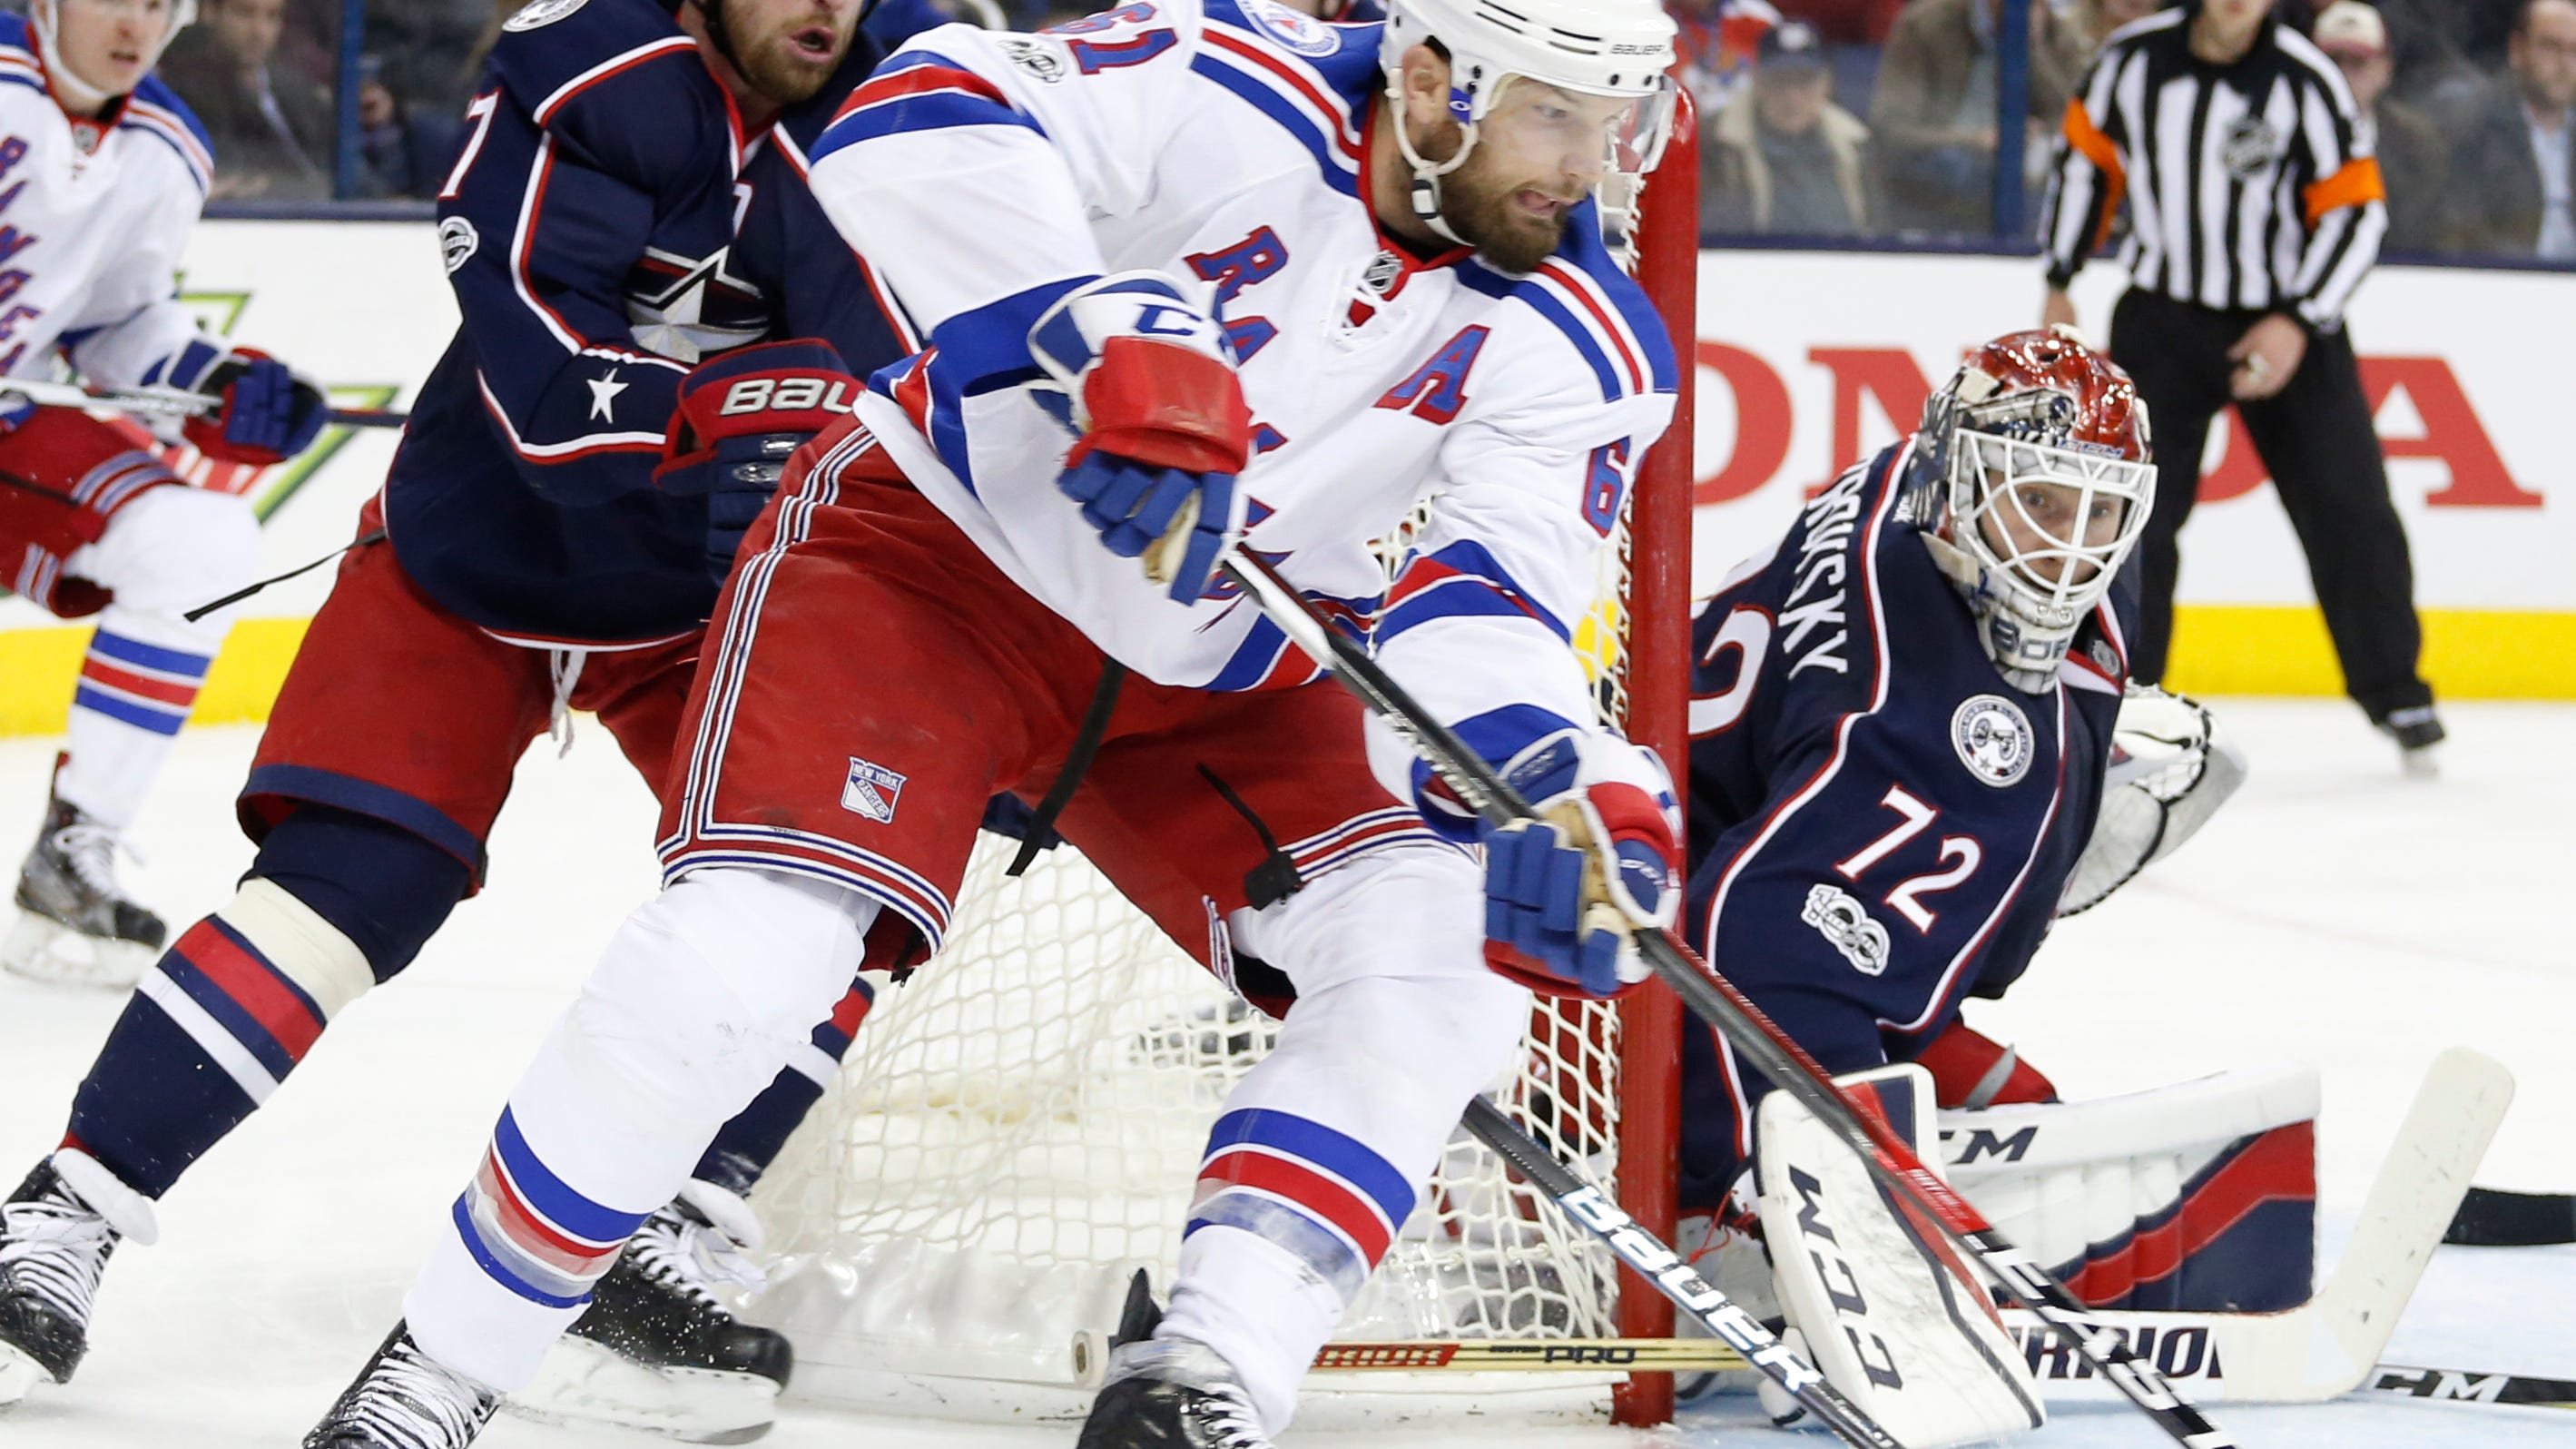 Short Side Goals On The Rise As Shooters Adjust To Goalies